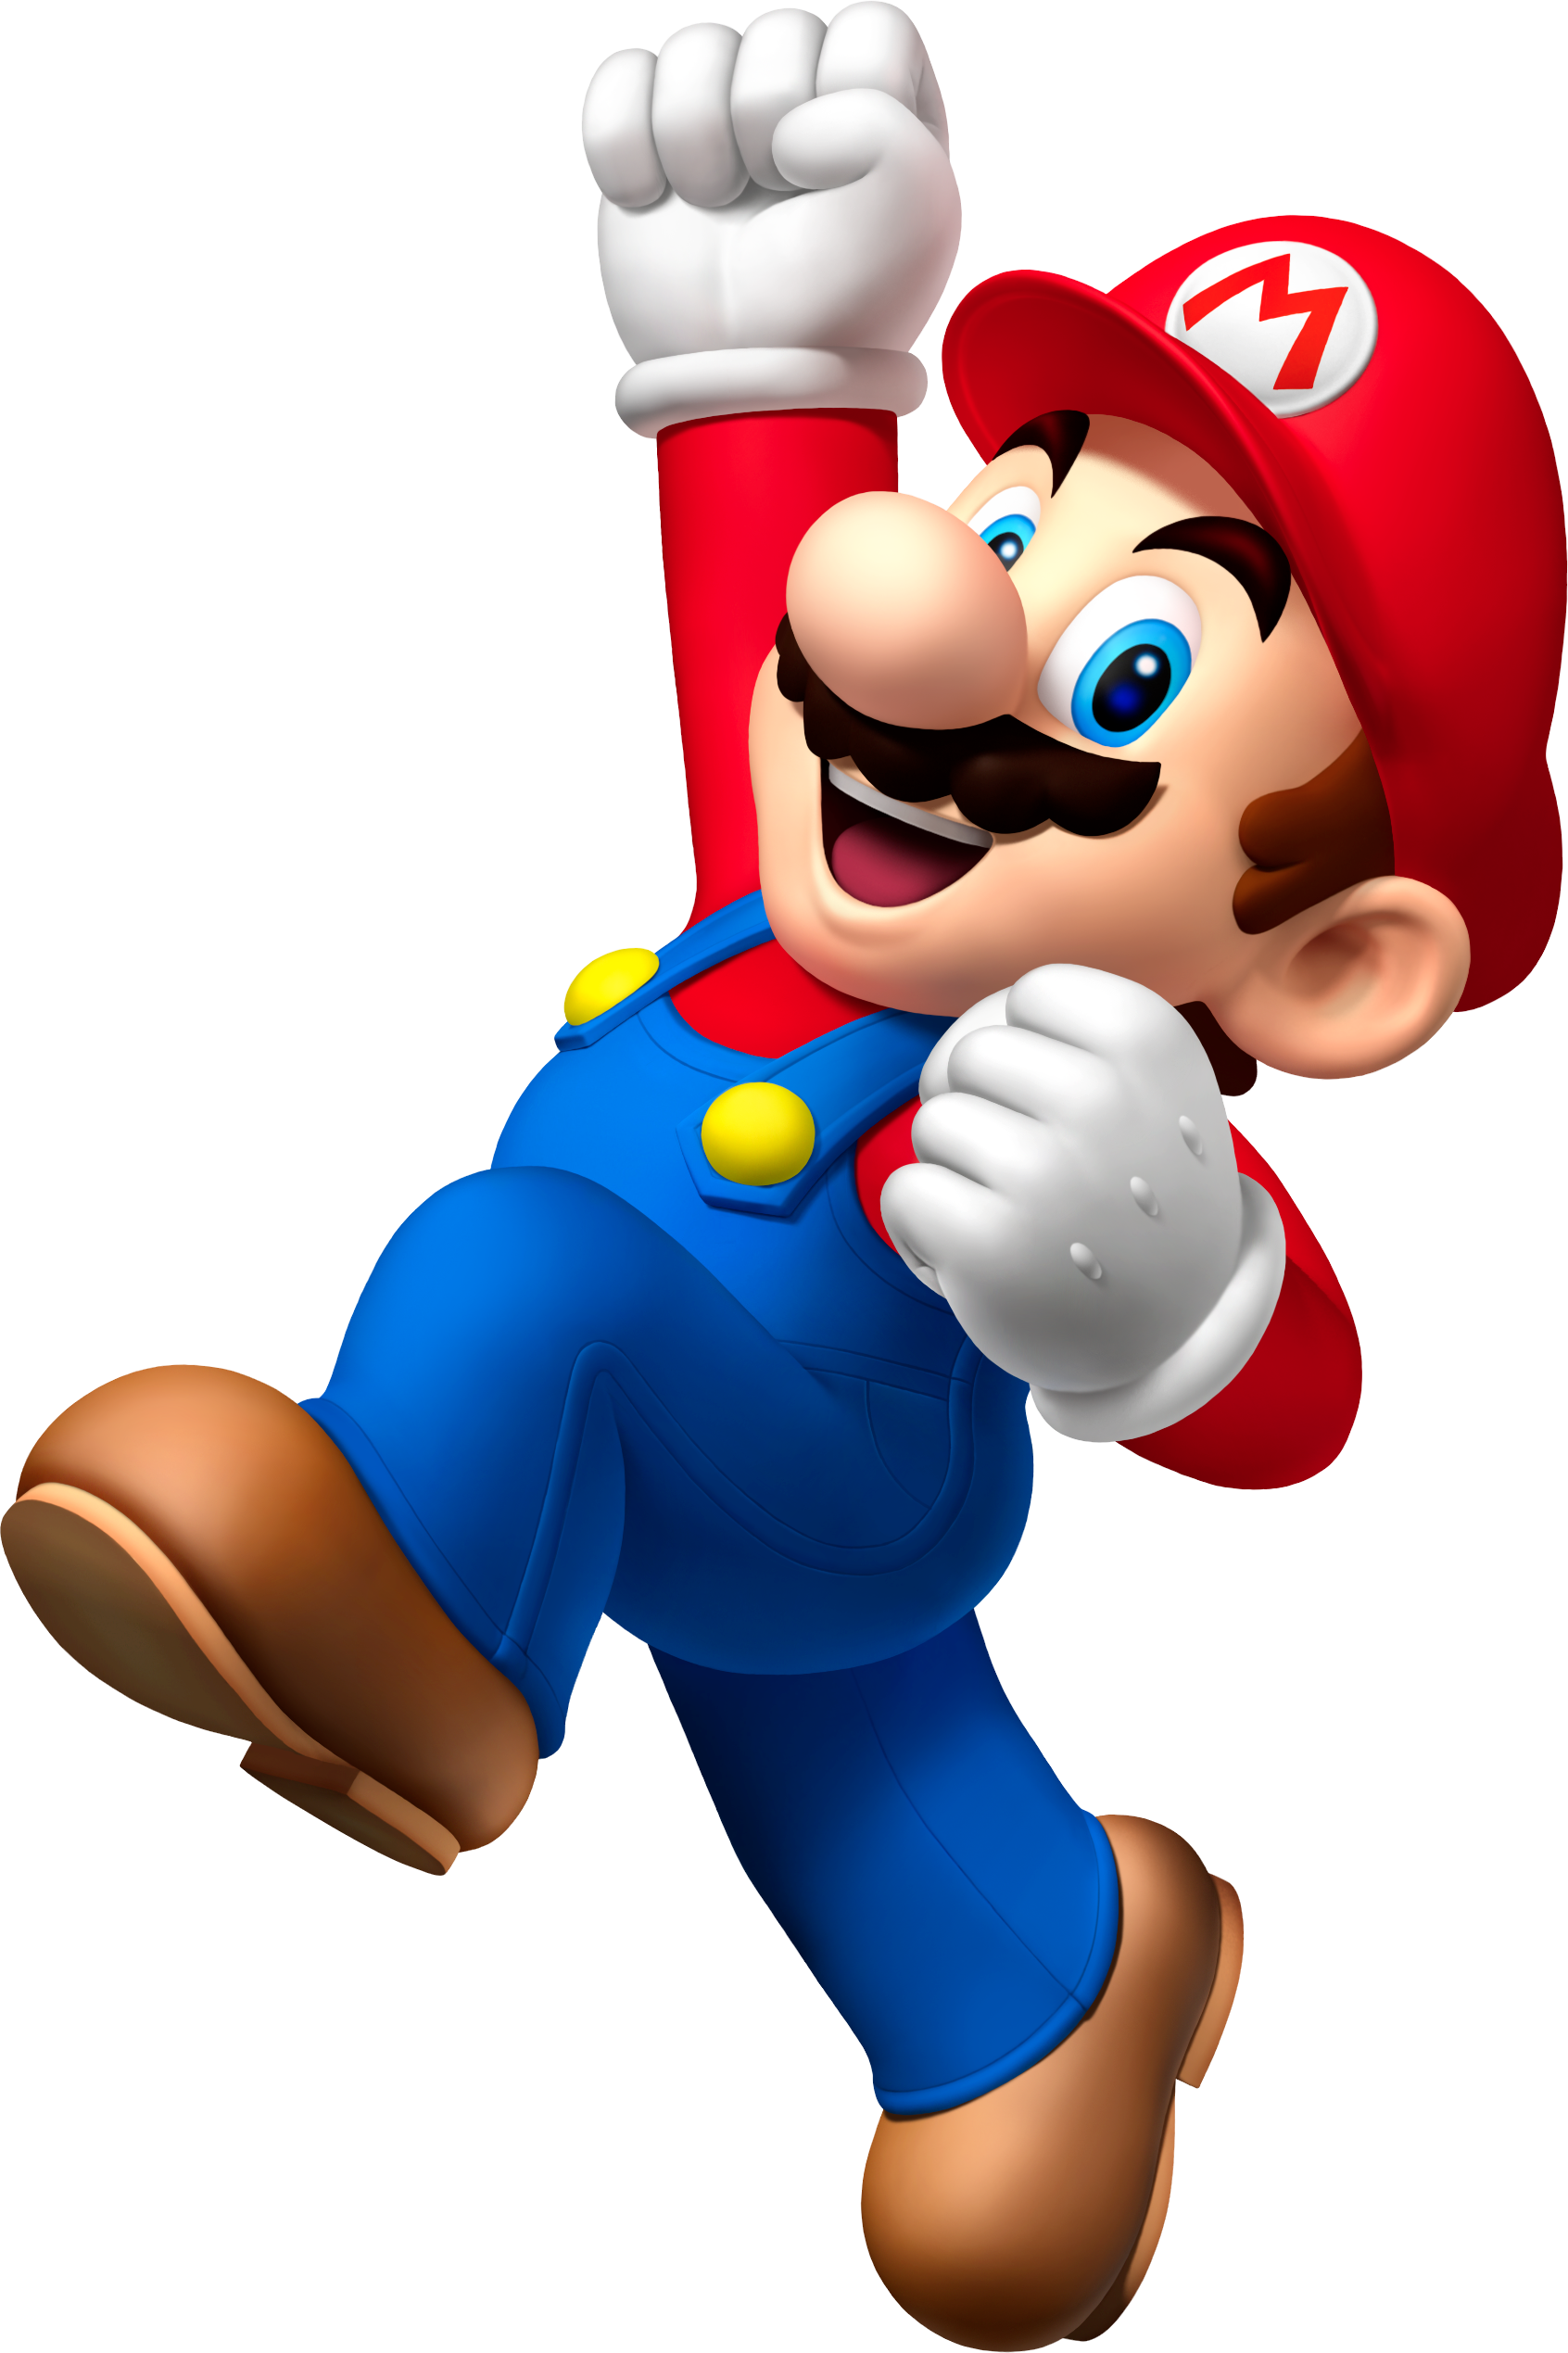 mario goanimate v2 wiki fandom powered by wikia